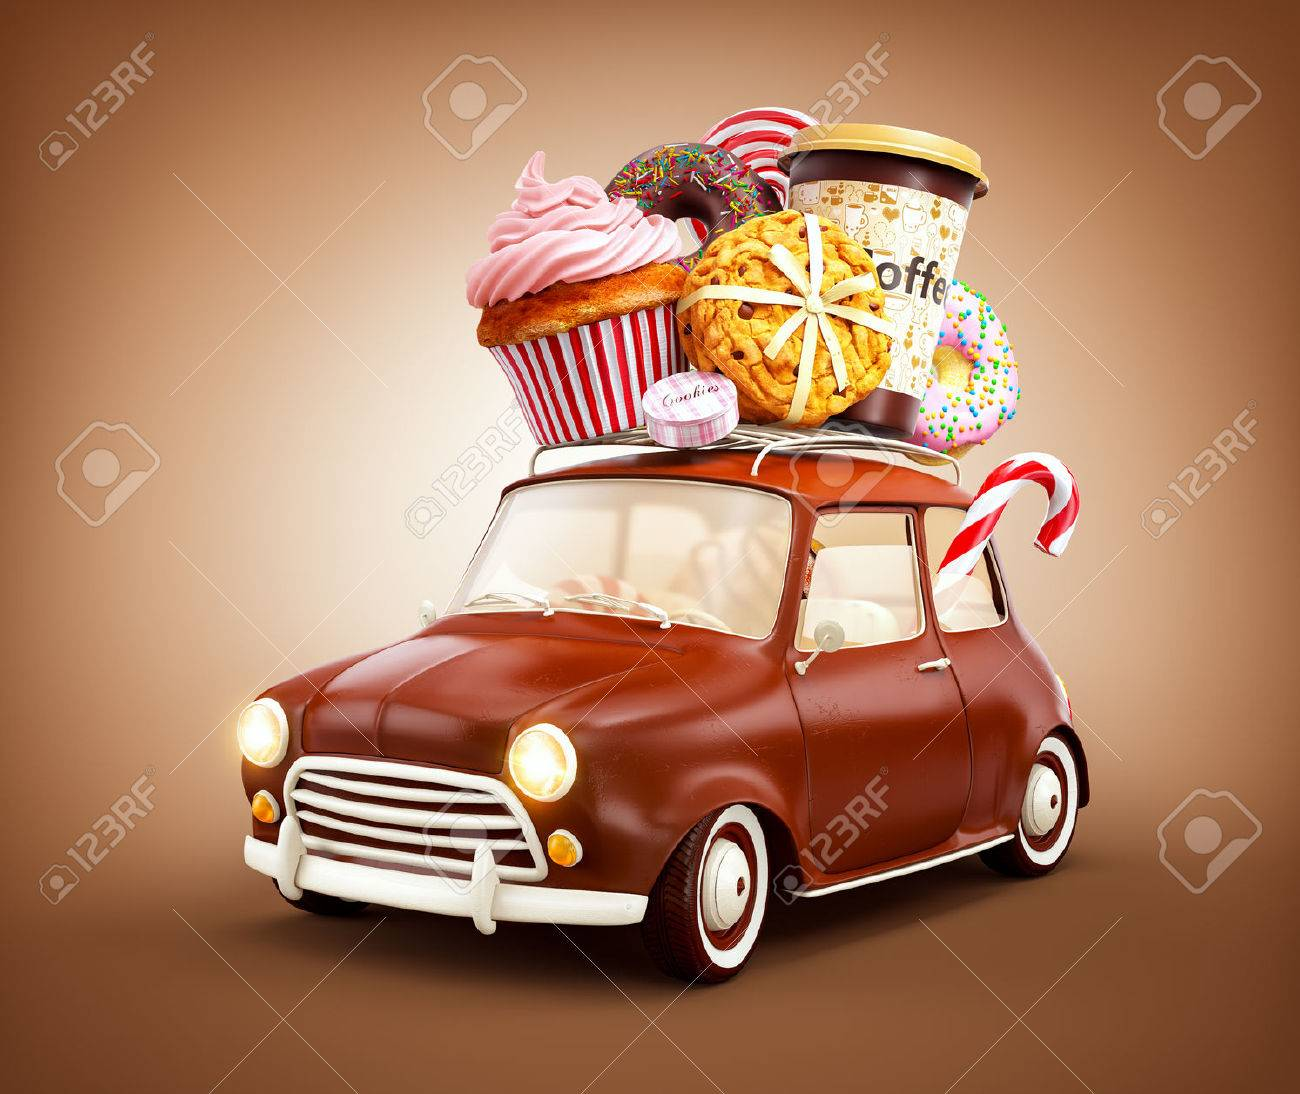 Cute fantastic chocolade car with sweets and coffee on top. - 58485387